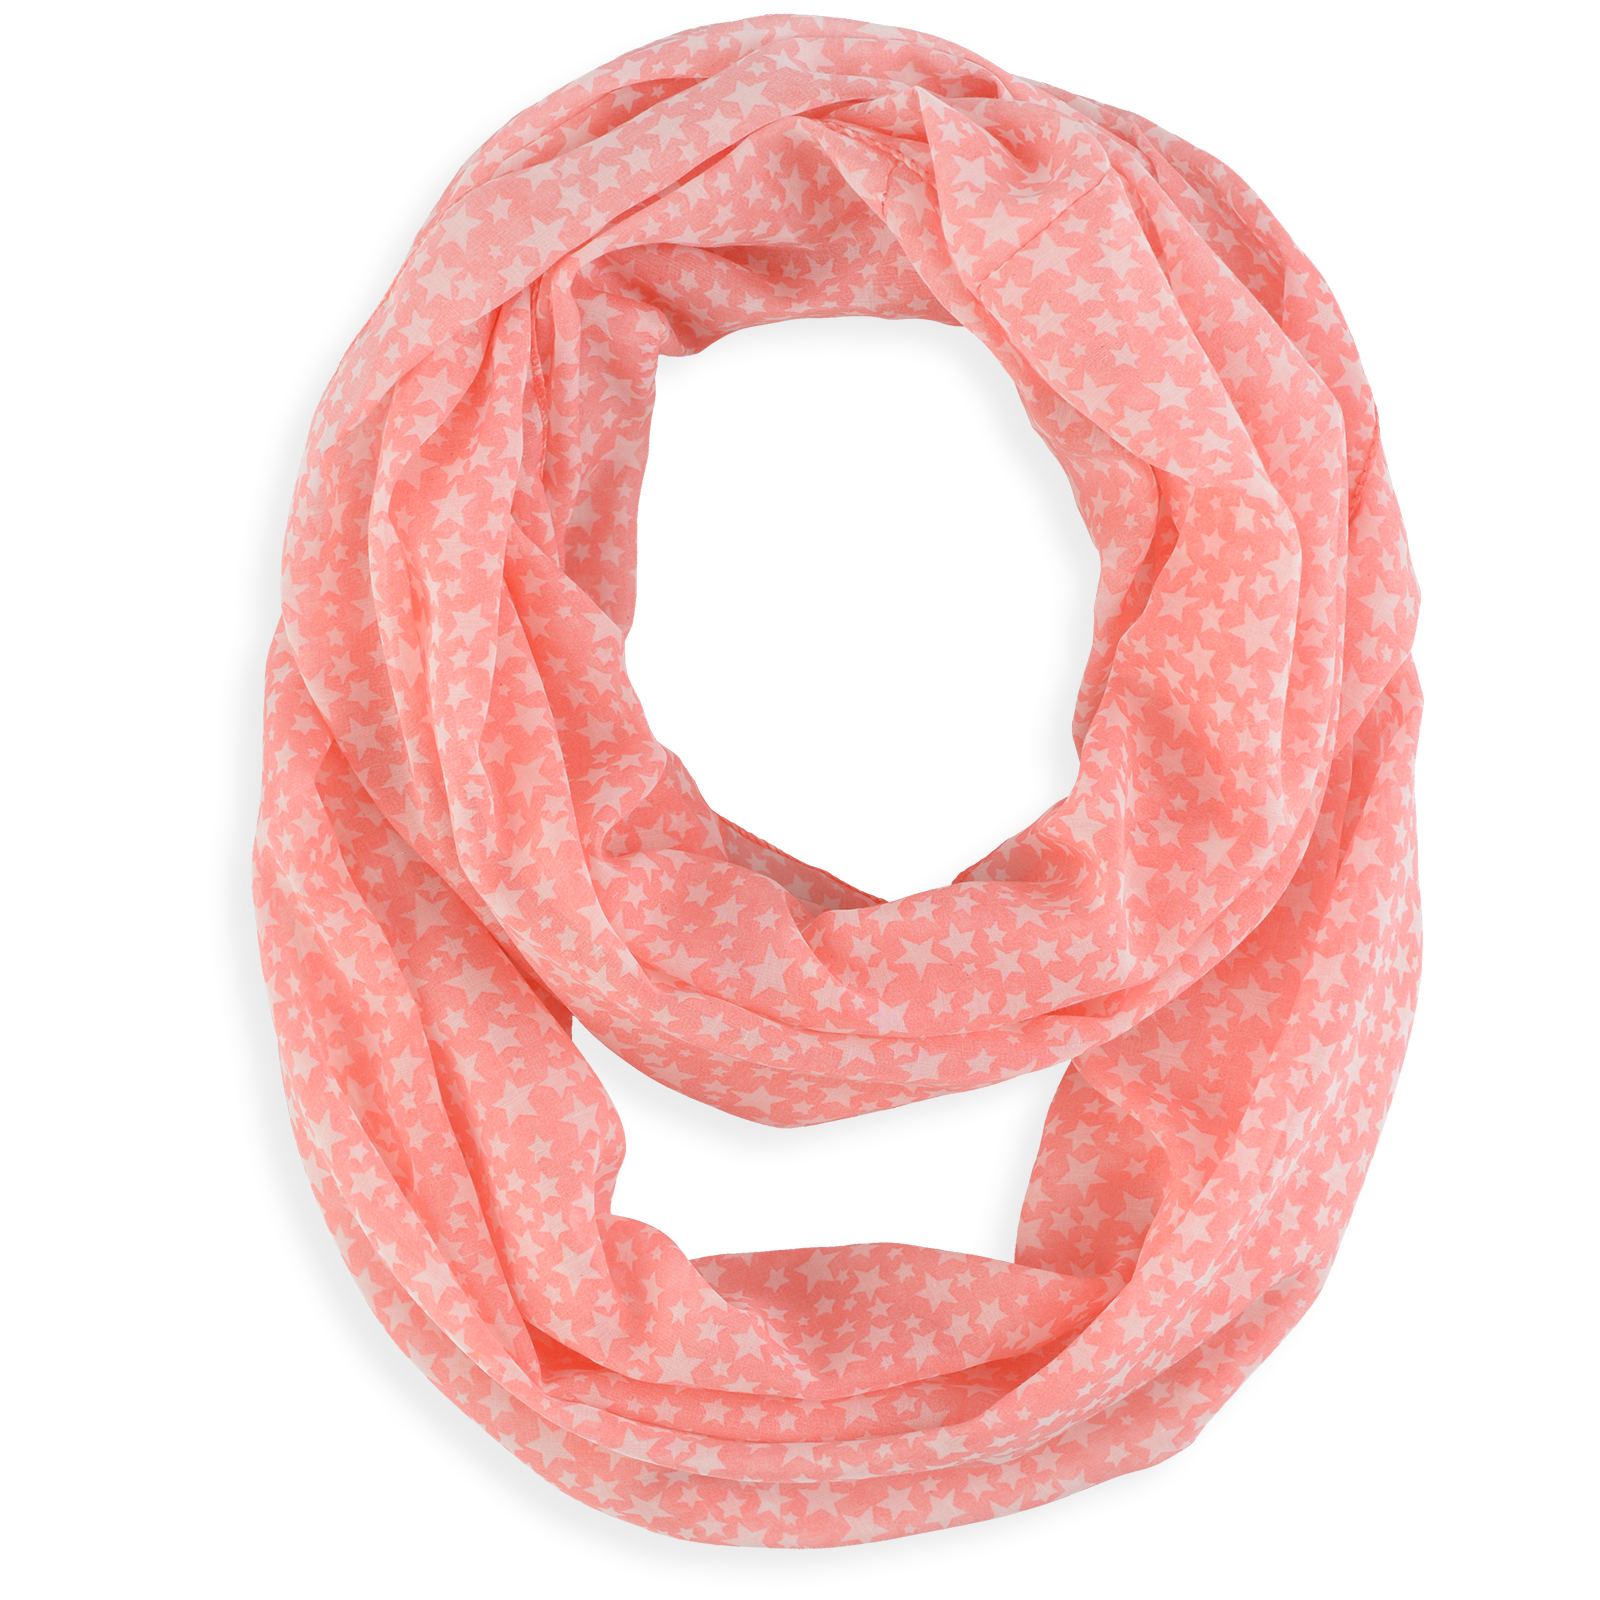 AT-03707-corail-F16-snood-leger-etoiles-corail